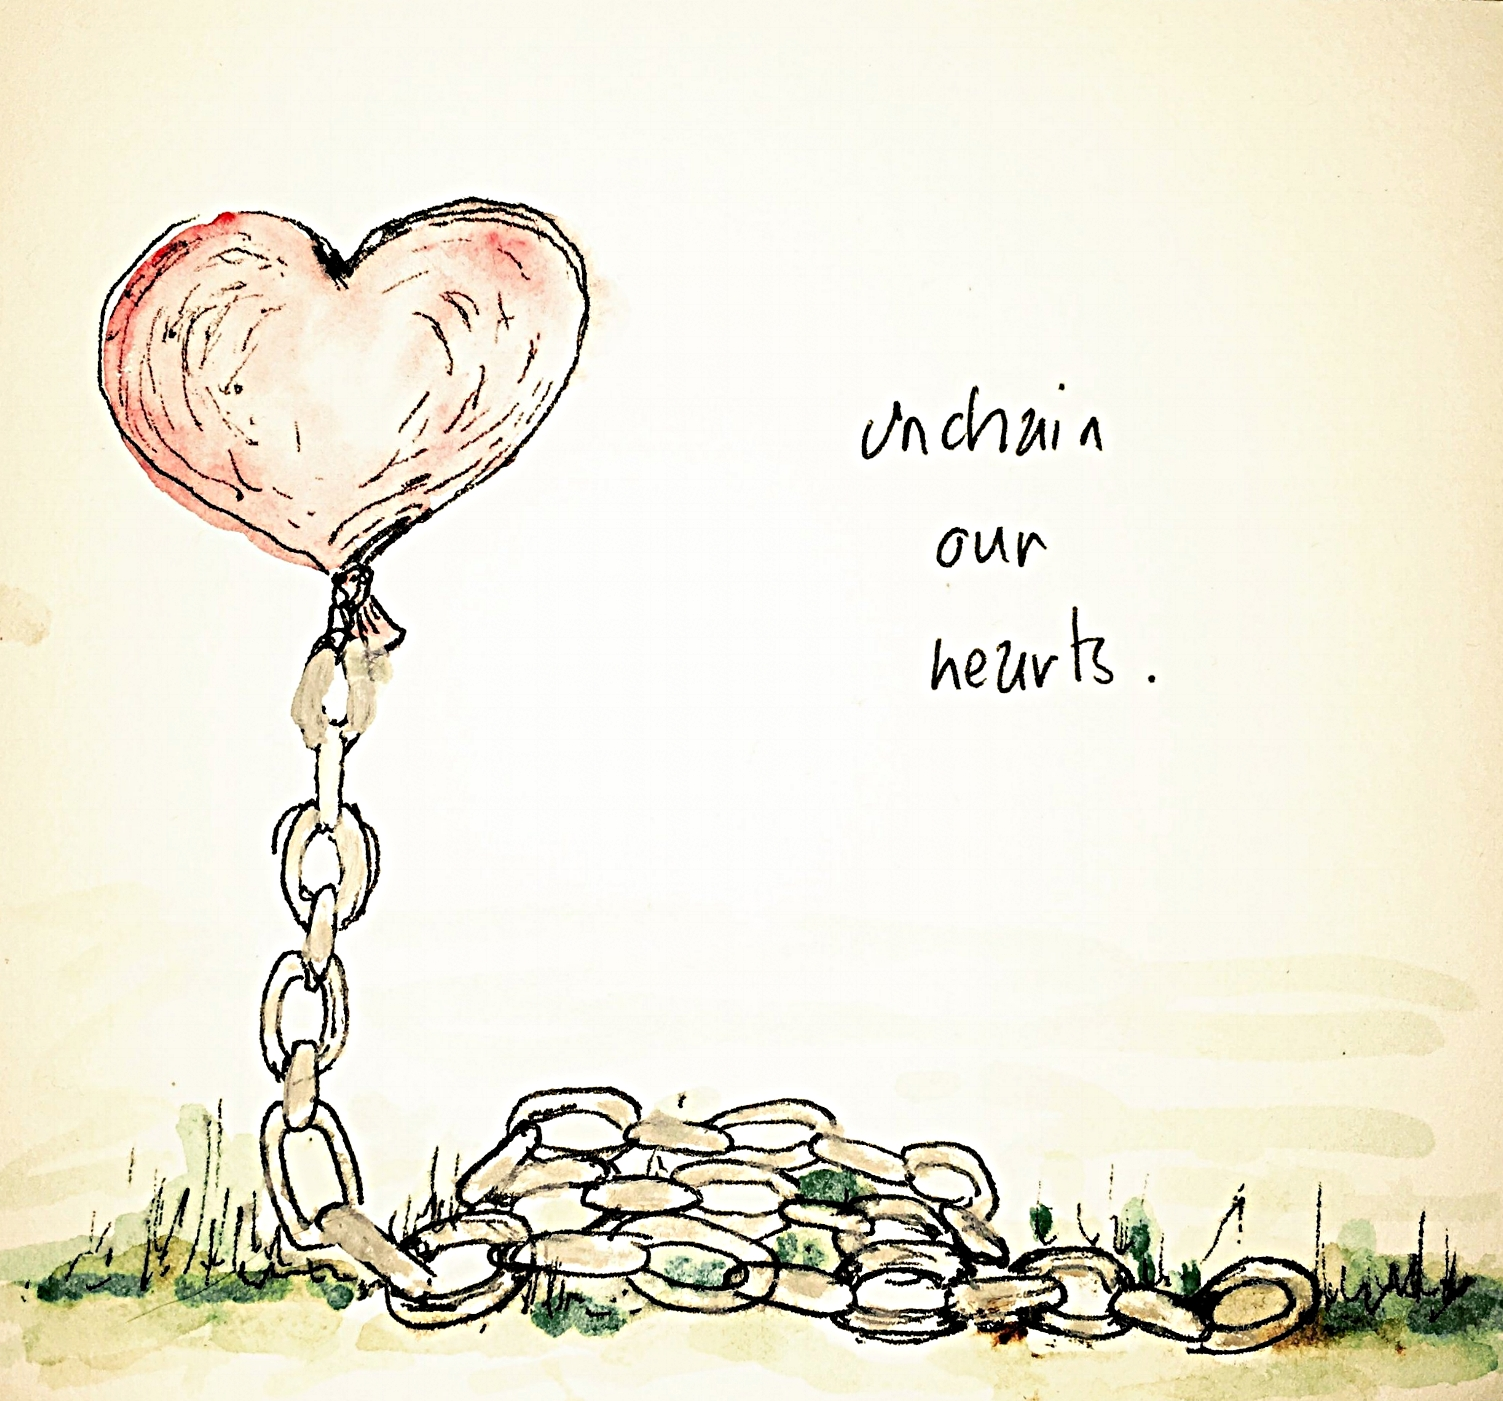 Unchain our hearts 1st attempt - ONE - UNITY & HOPE